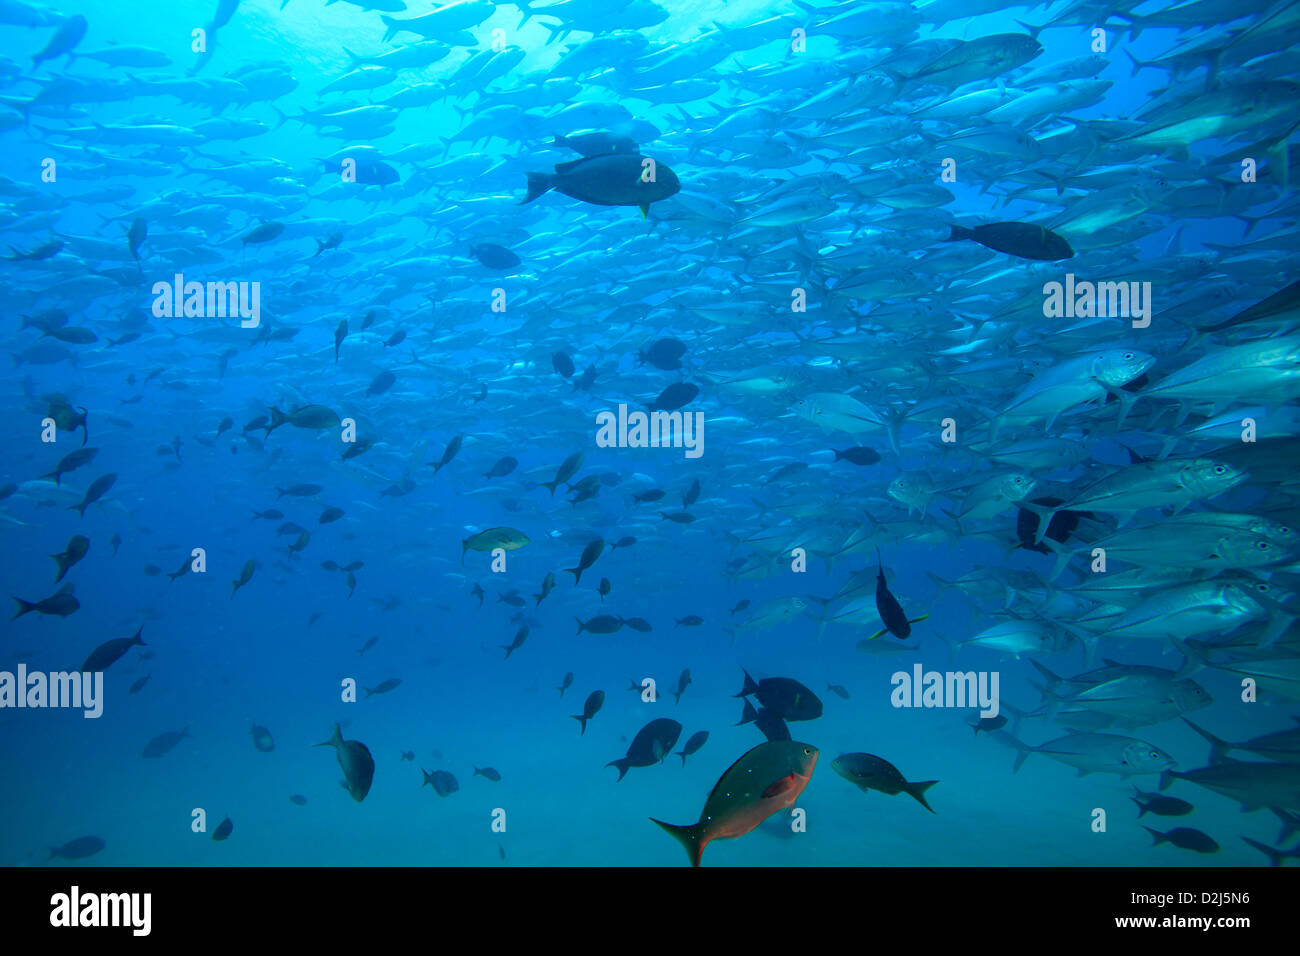 Large schools of tropical reef fish at Cabo Pulmo National Marine Park, Mexico. - Stock Image